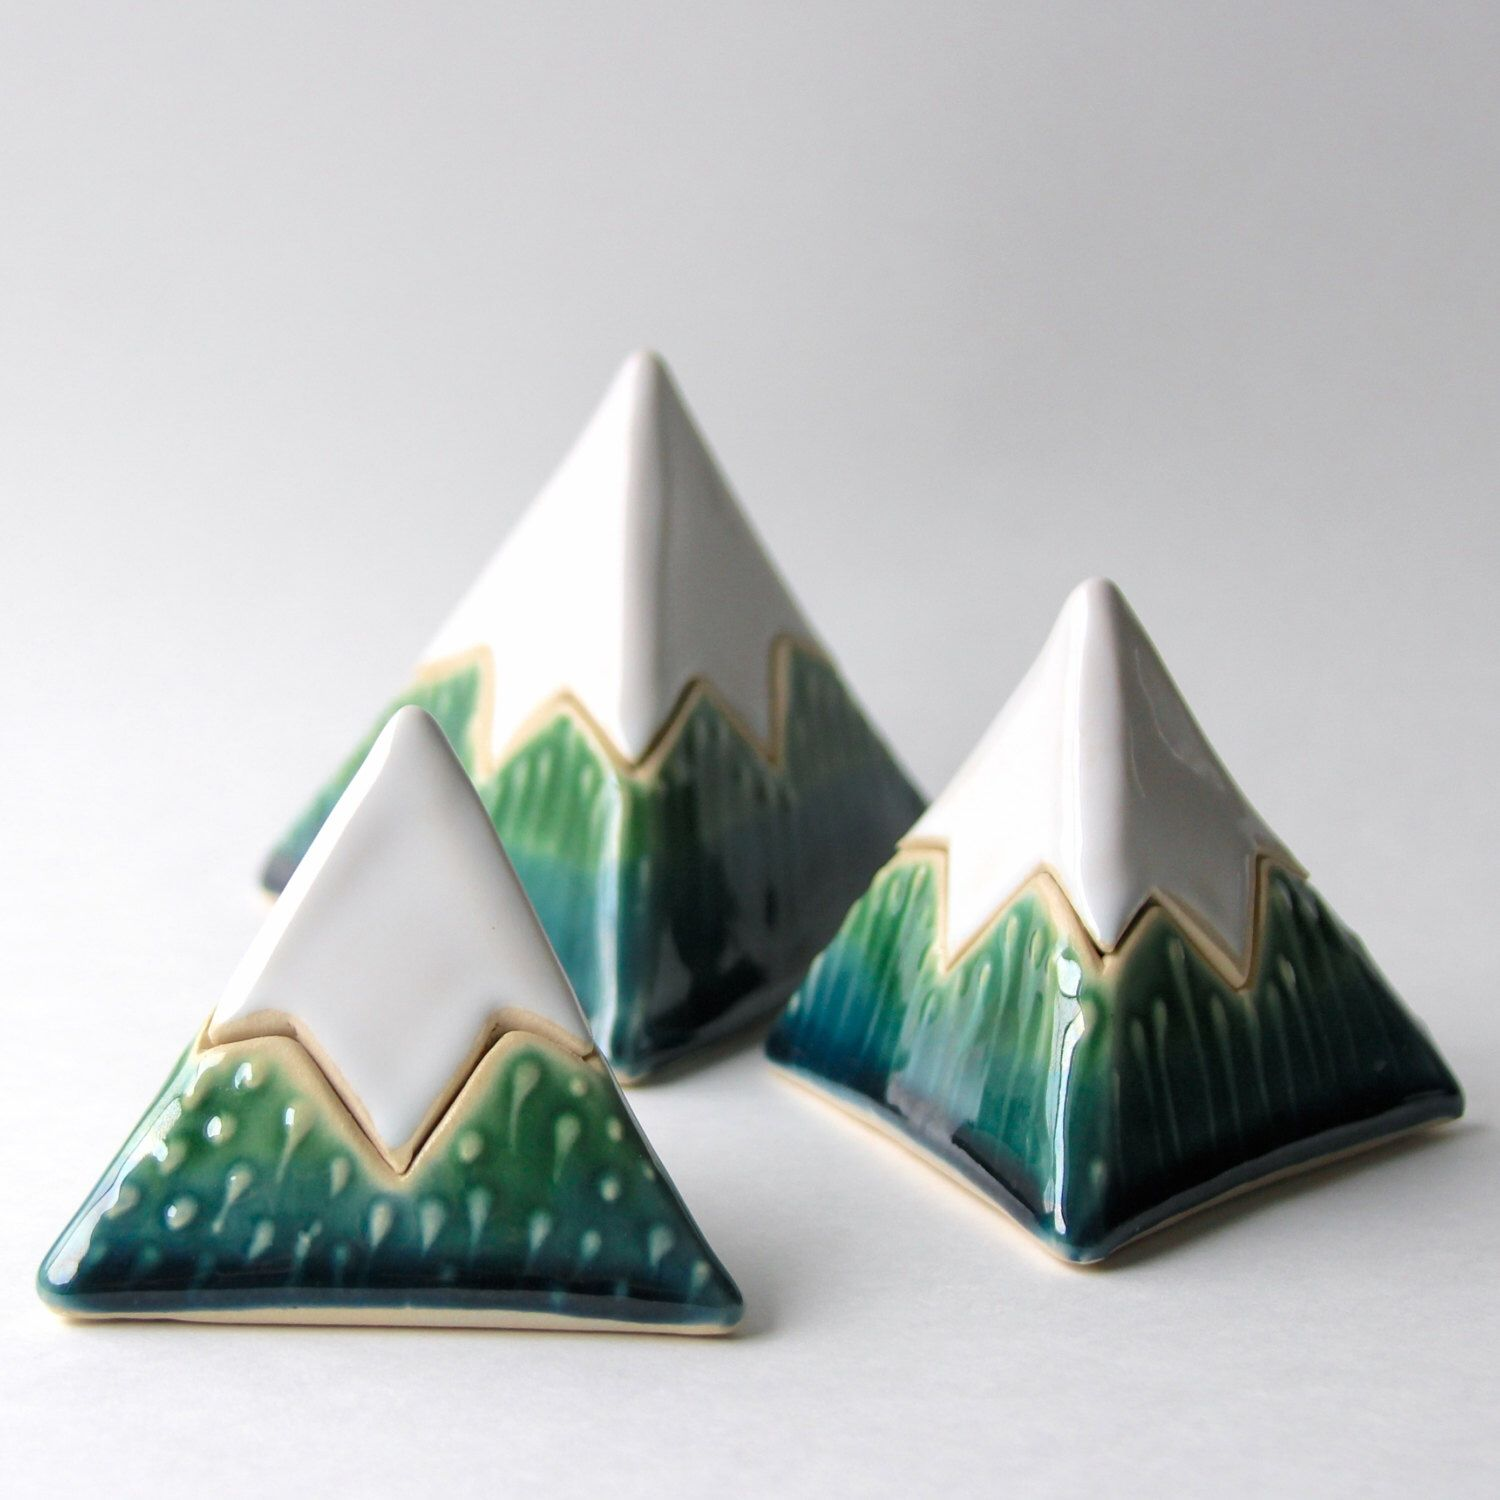 Mountain Box - Lidded Vessel - Geometric Triangle Pyramid - Modern Home Decor - Blue Green White - Ready to Ship by BackBayPottery on Etsy https://www.etsy.com/listing/214690603/mountain-box-lidded-vessel-geometric